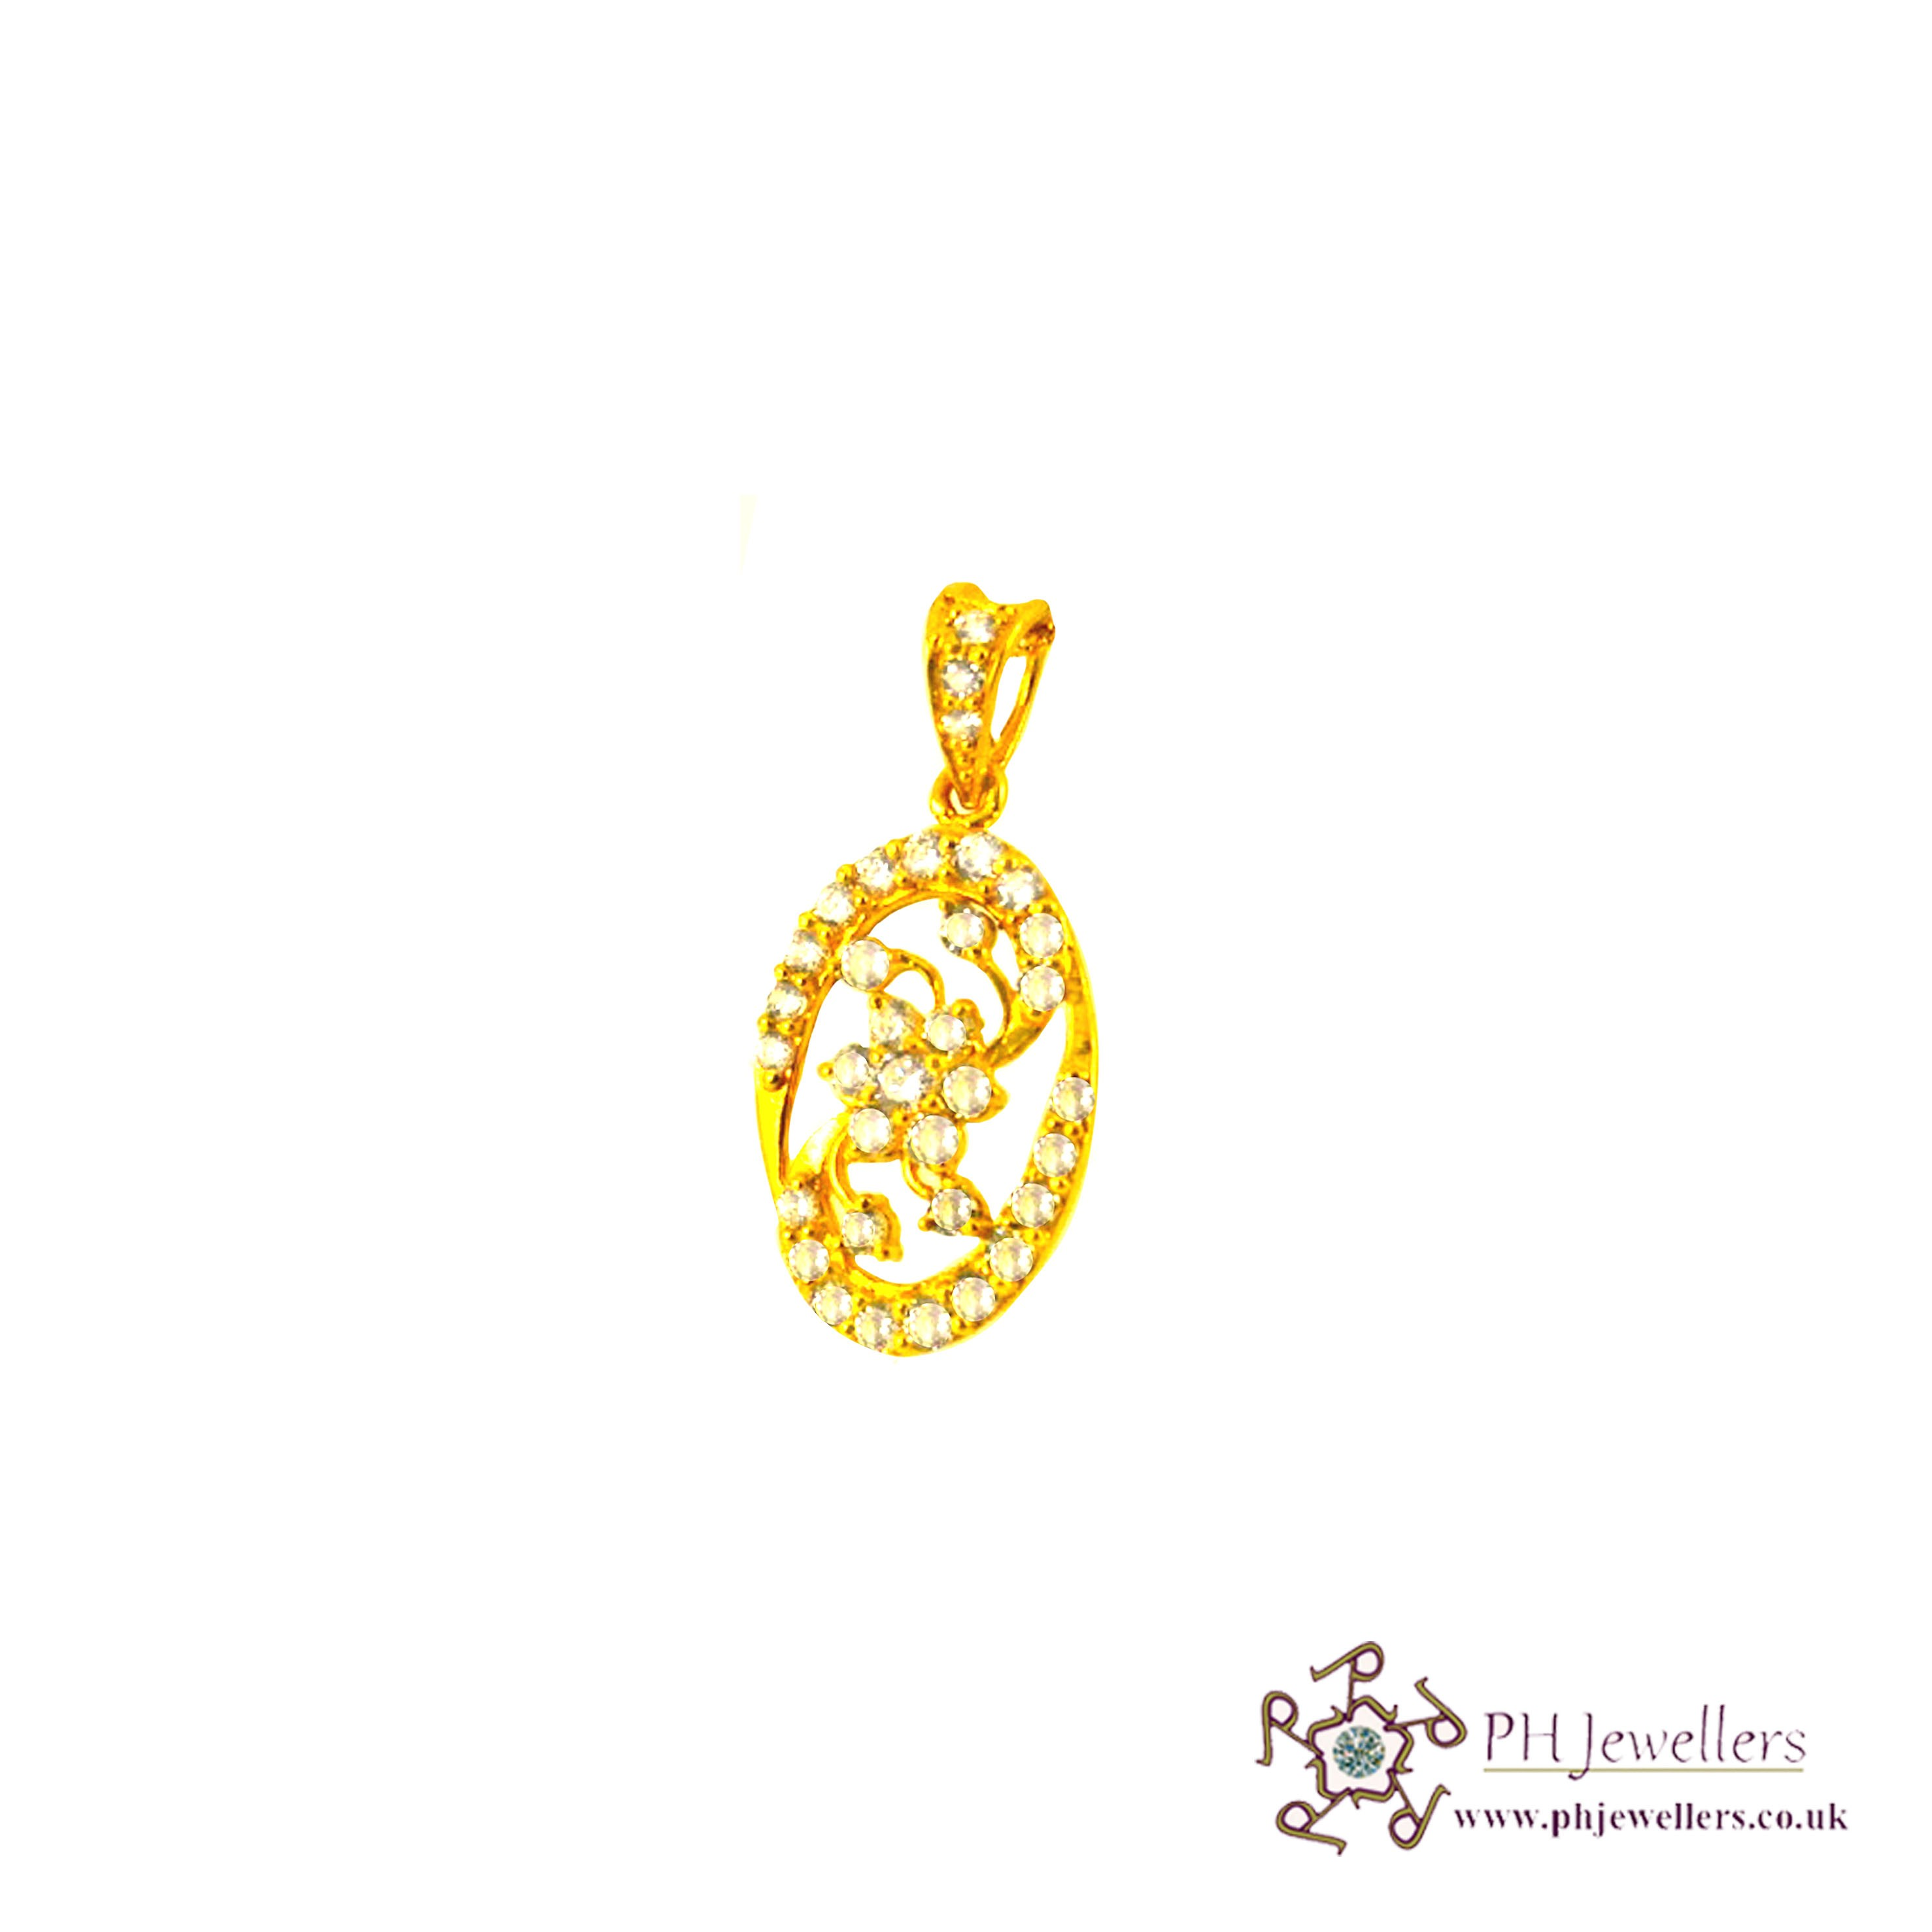 22ct 916 Hallmark Yellow Gold Oval Pendant CZ FP2